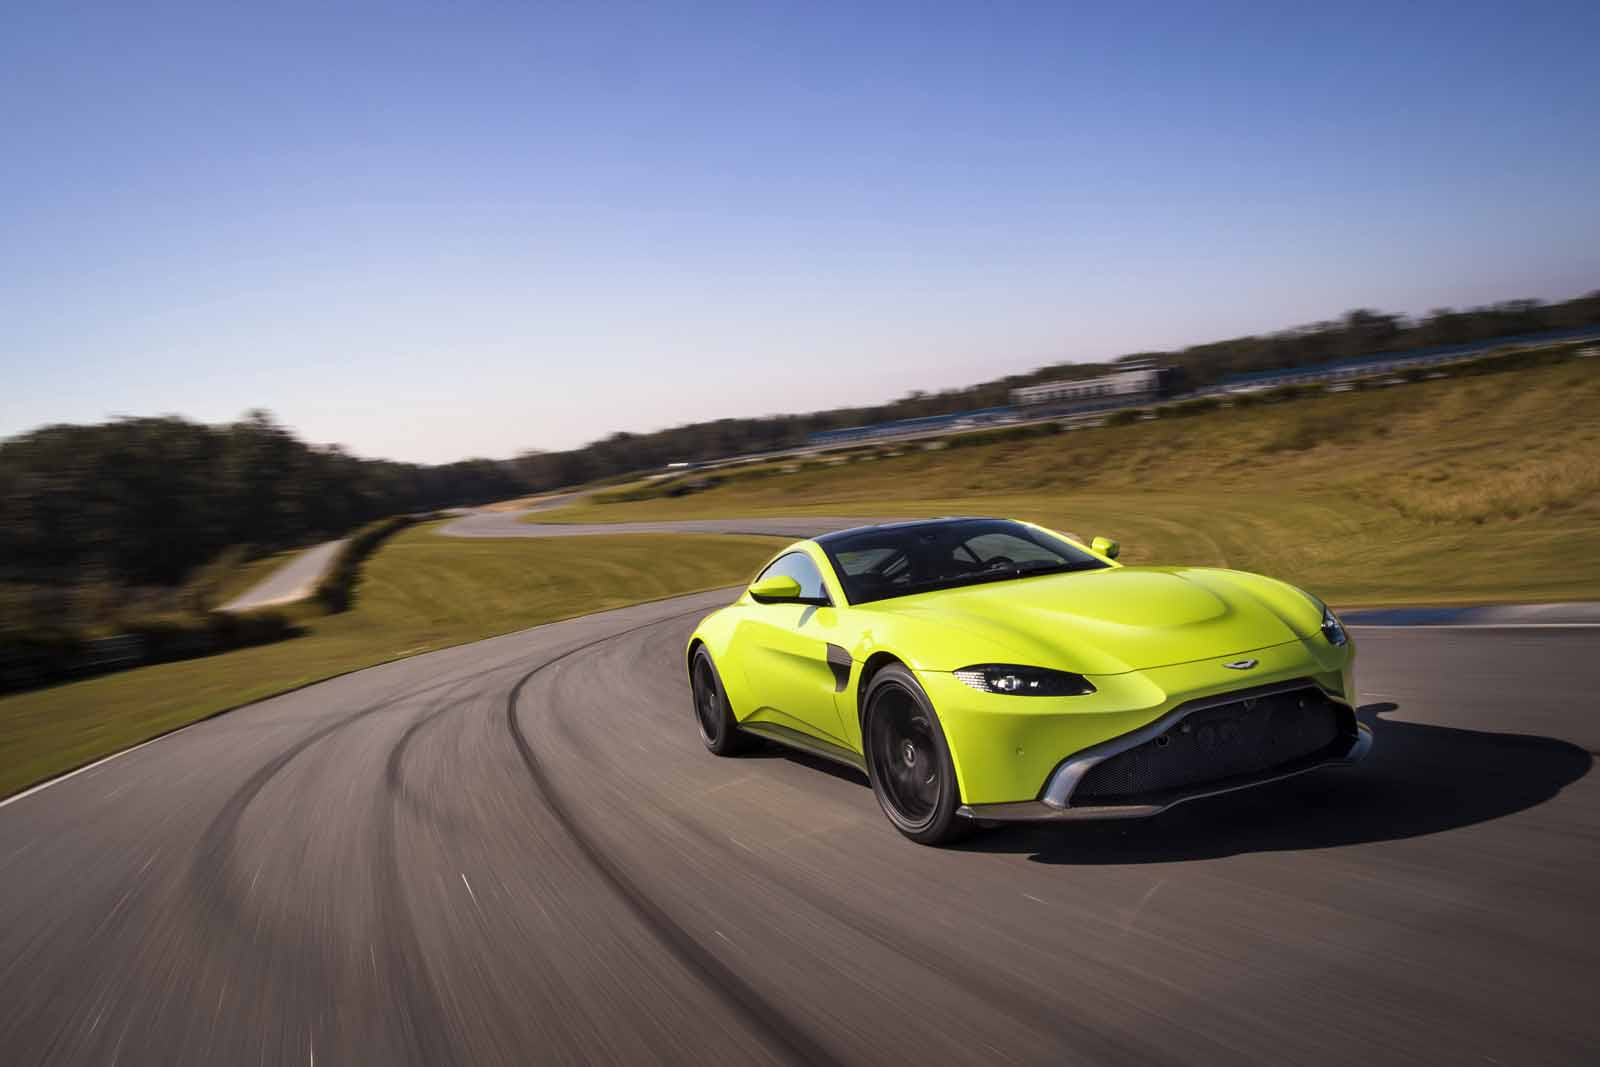 New 2019 Aston Martin Vantage is Here to Eat Your Lunch